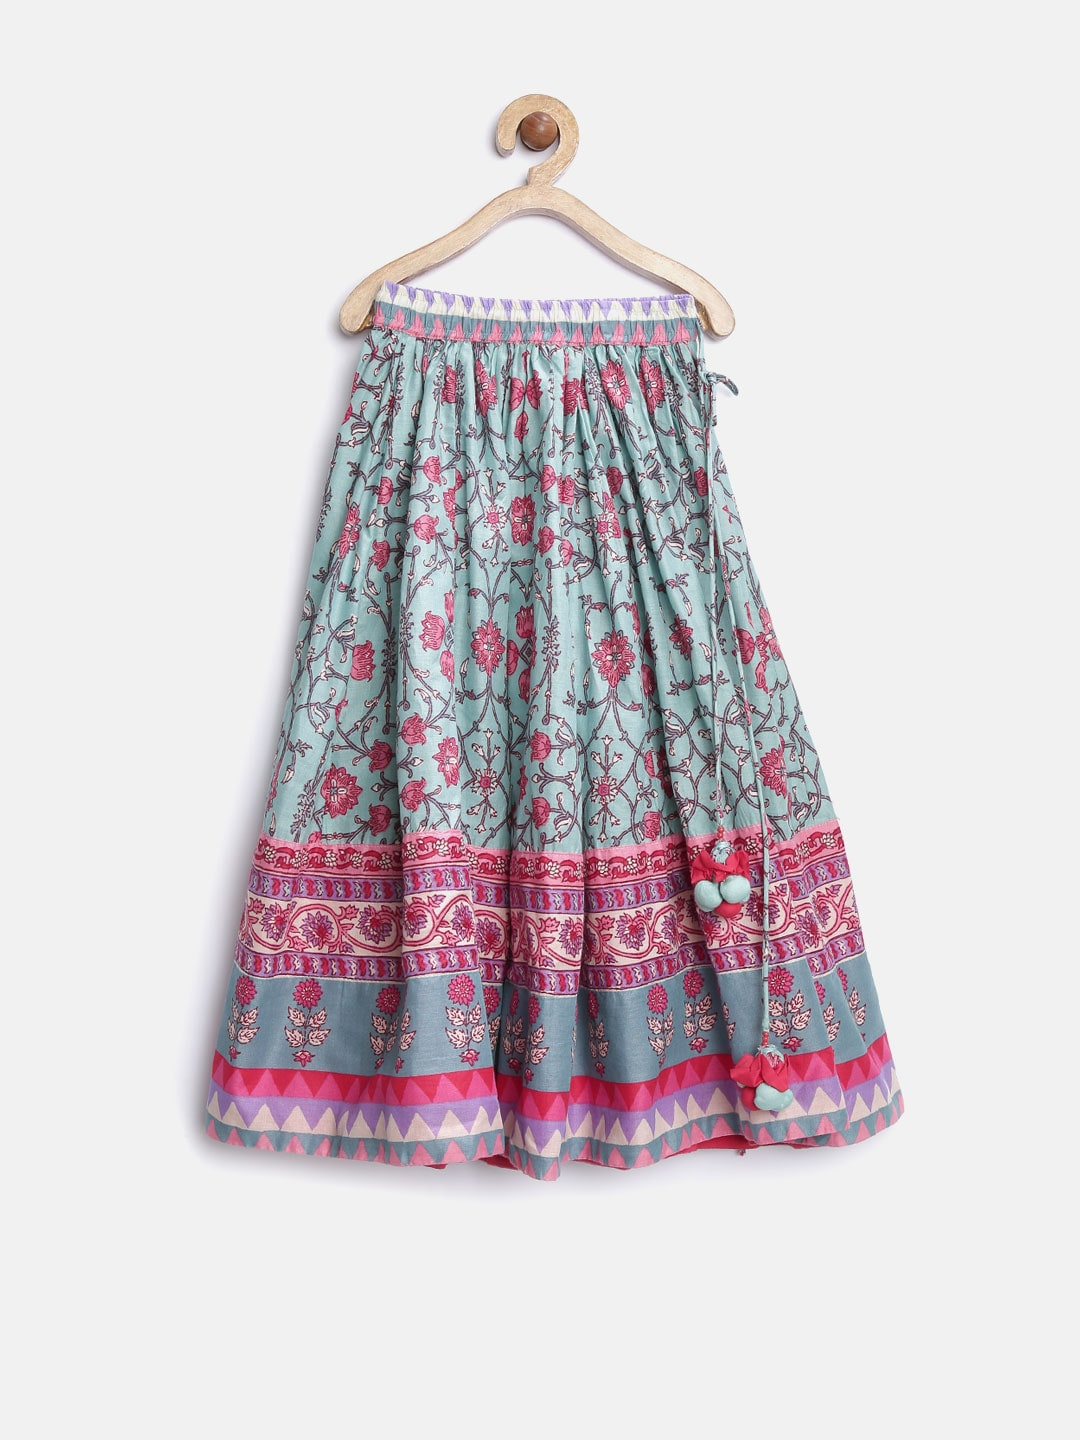 72273d1a85 Kids Skirts - Buy Kids Skirts online in India